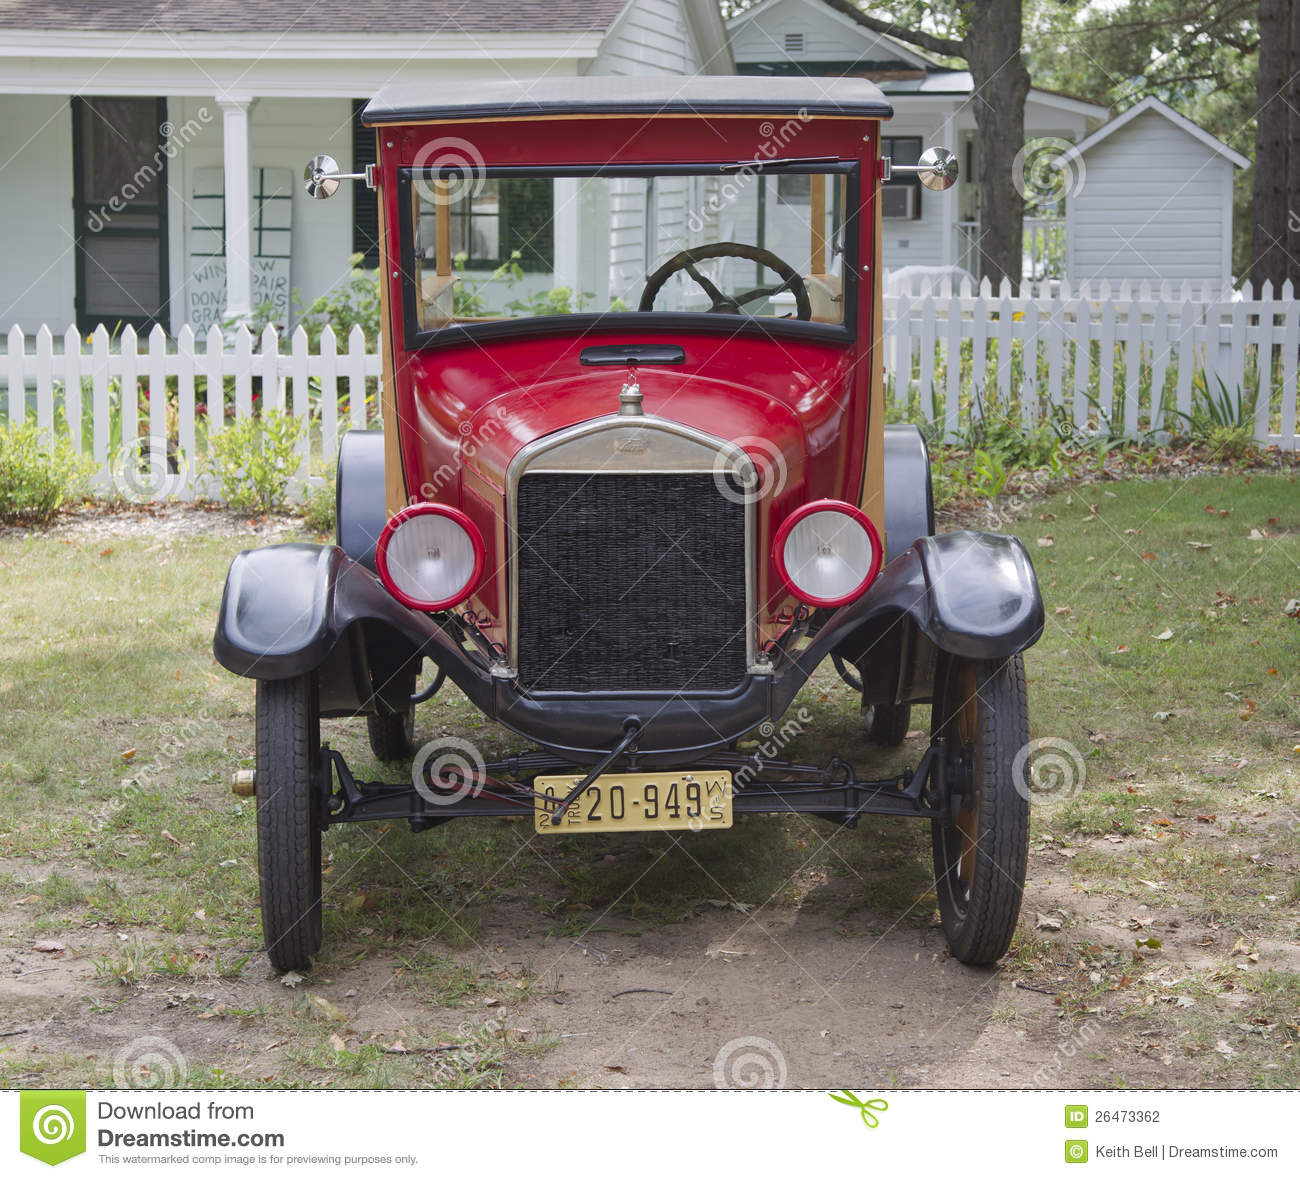 Waupaca Wi   August 25  Front View Of A 1926 Ford Model T Red Car At